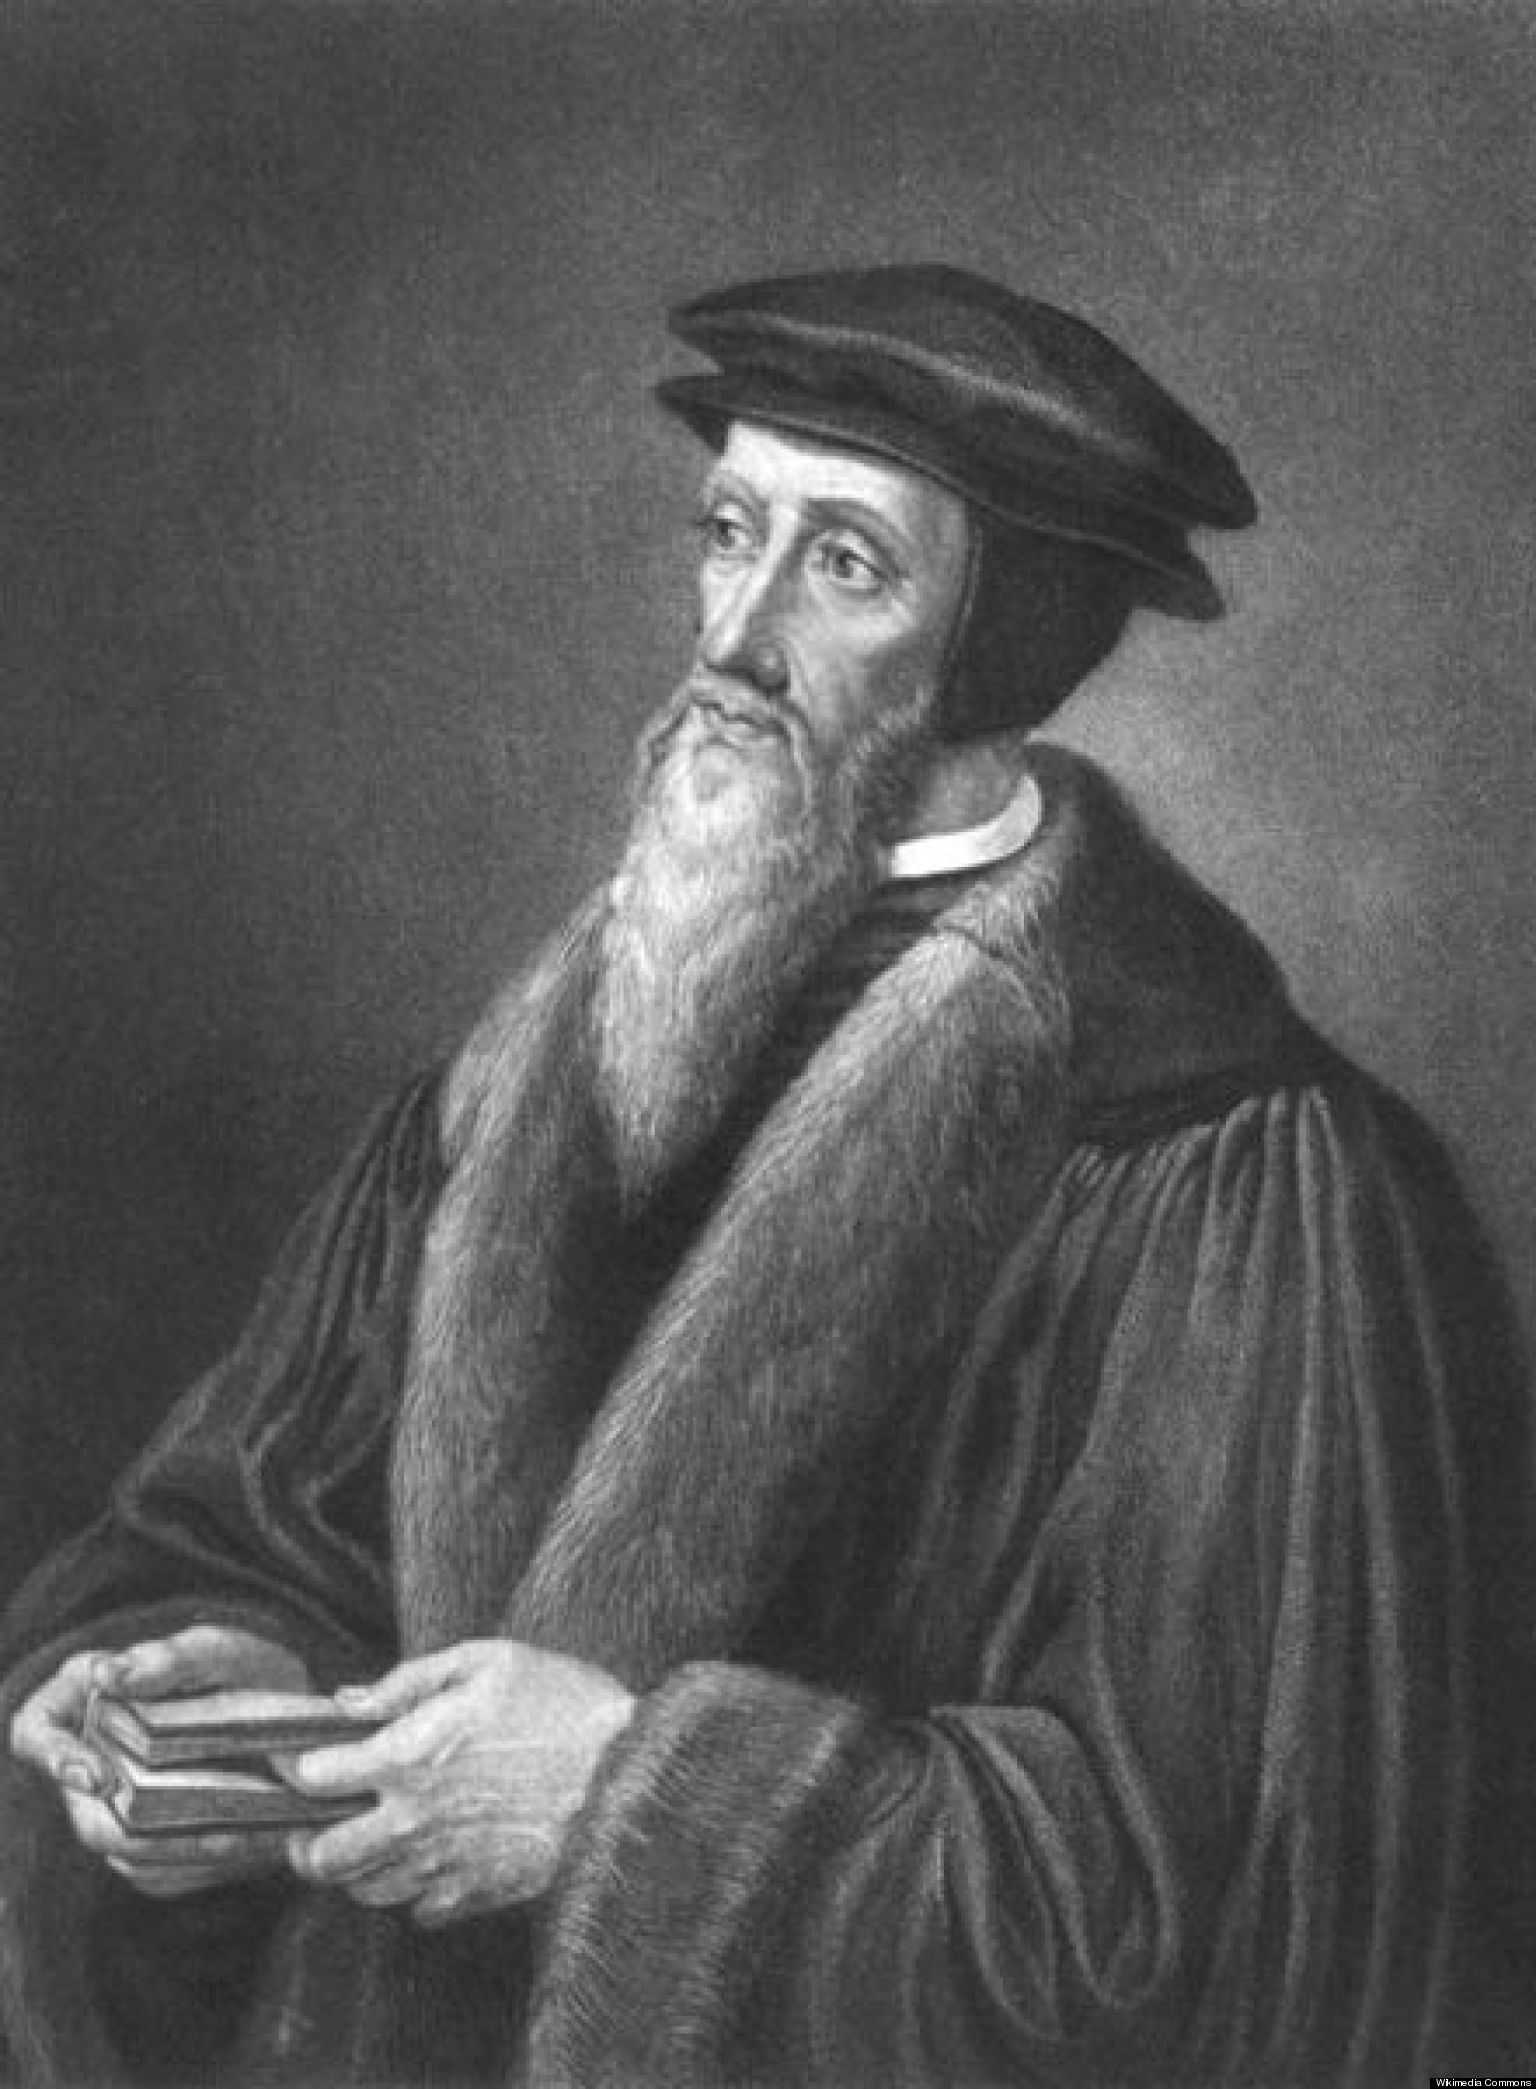 john calvin According to john calvin, predestination is god's unchangeable decree from  before the creation of the world that he would freely save some people (the elect), .